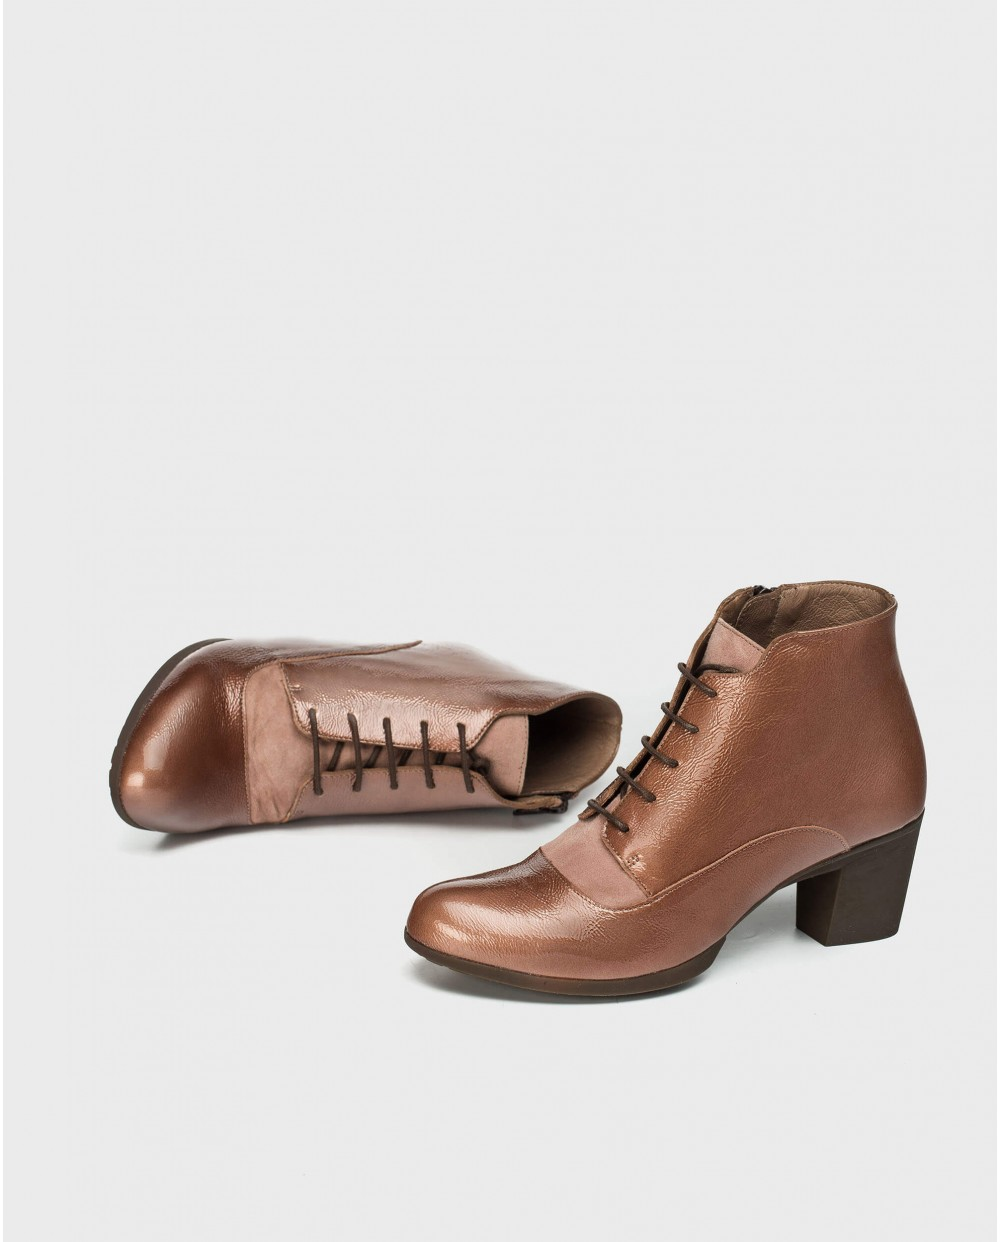 Patent leather ankle boot with shoelace closure